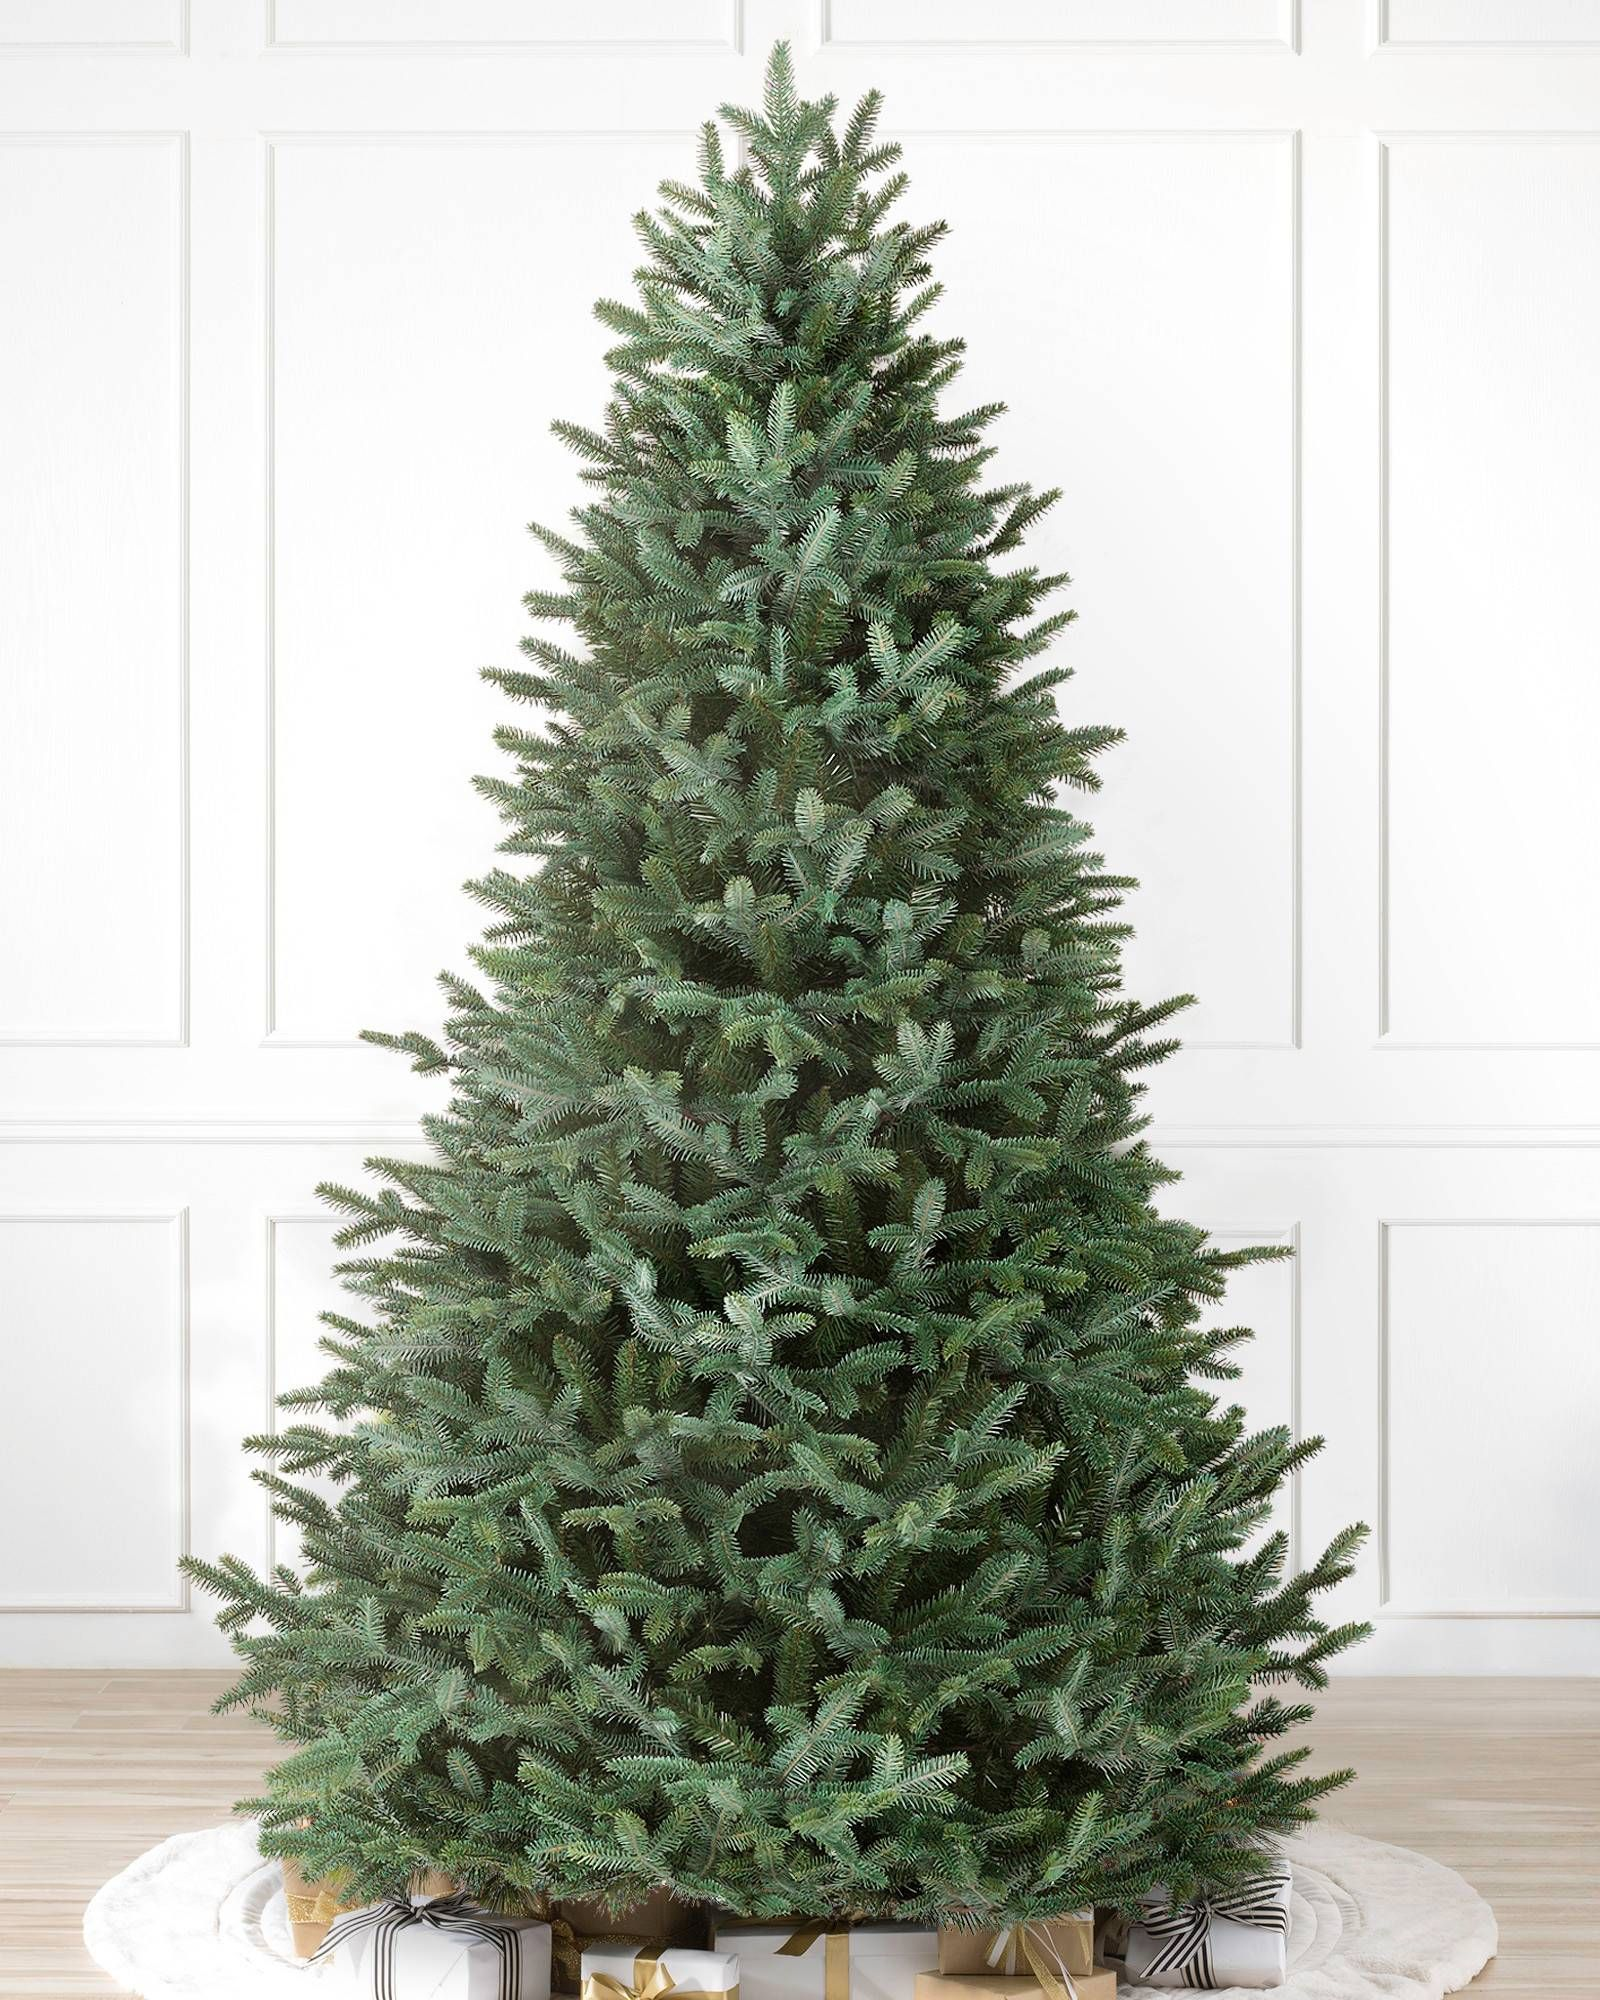 This Artificial Christmas Tree Features Lush Foliage Crafted From